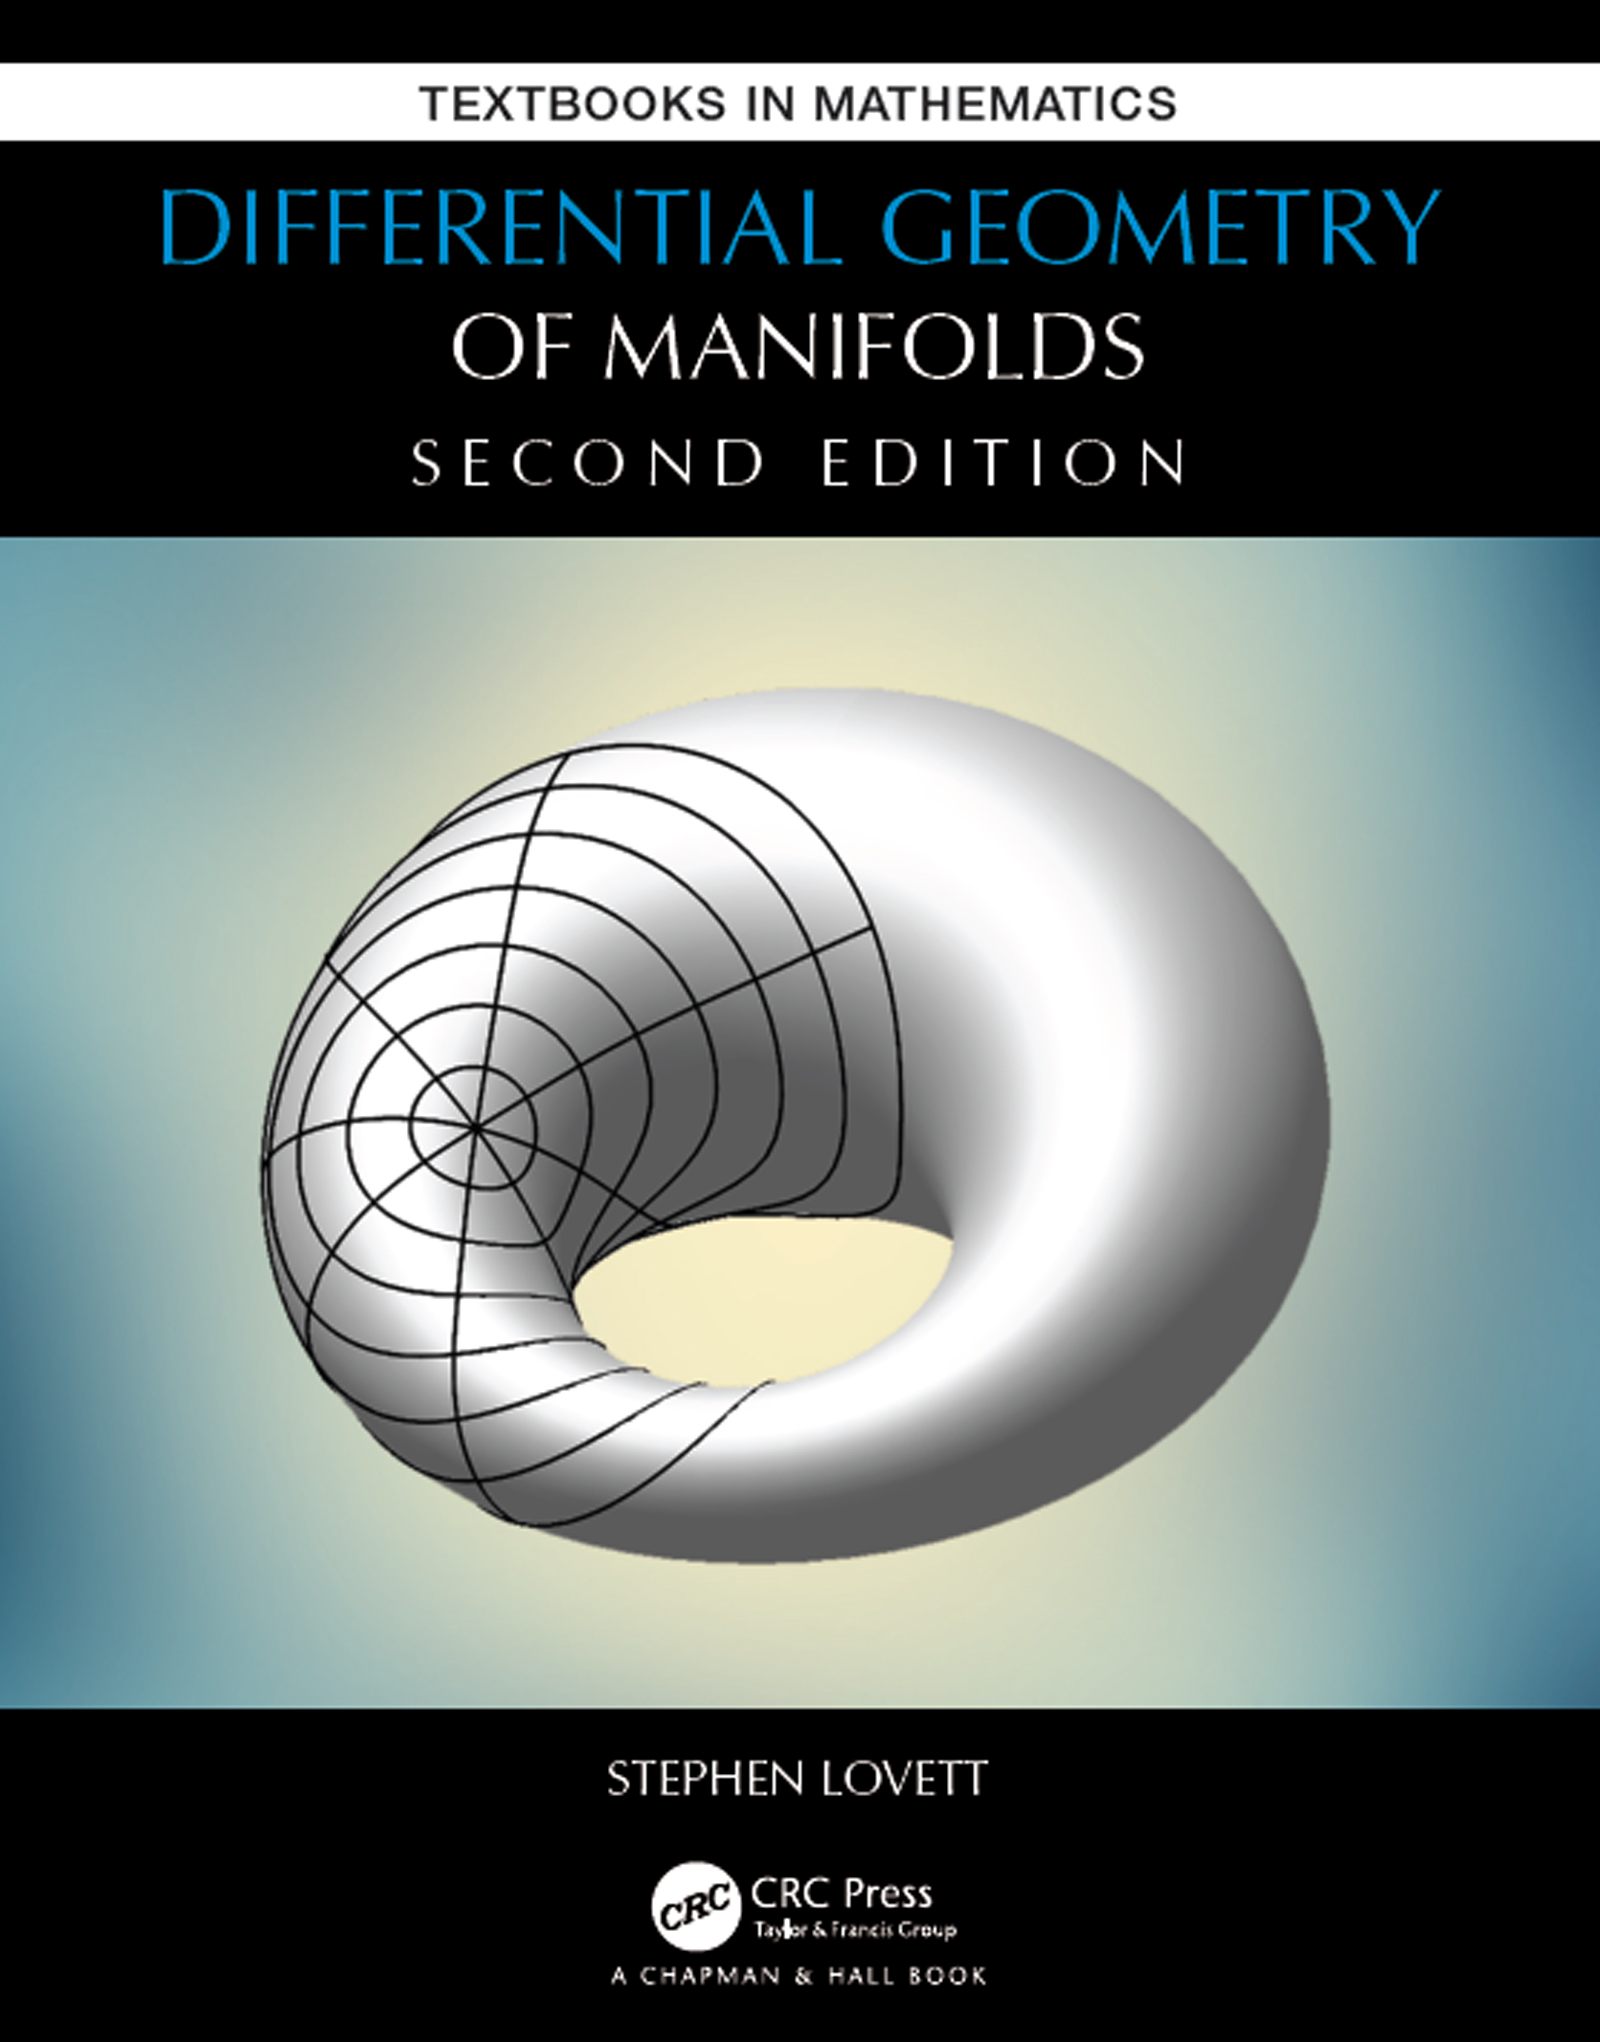 Differential Geometry of Manifolds book cover